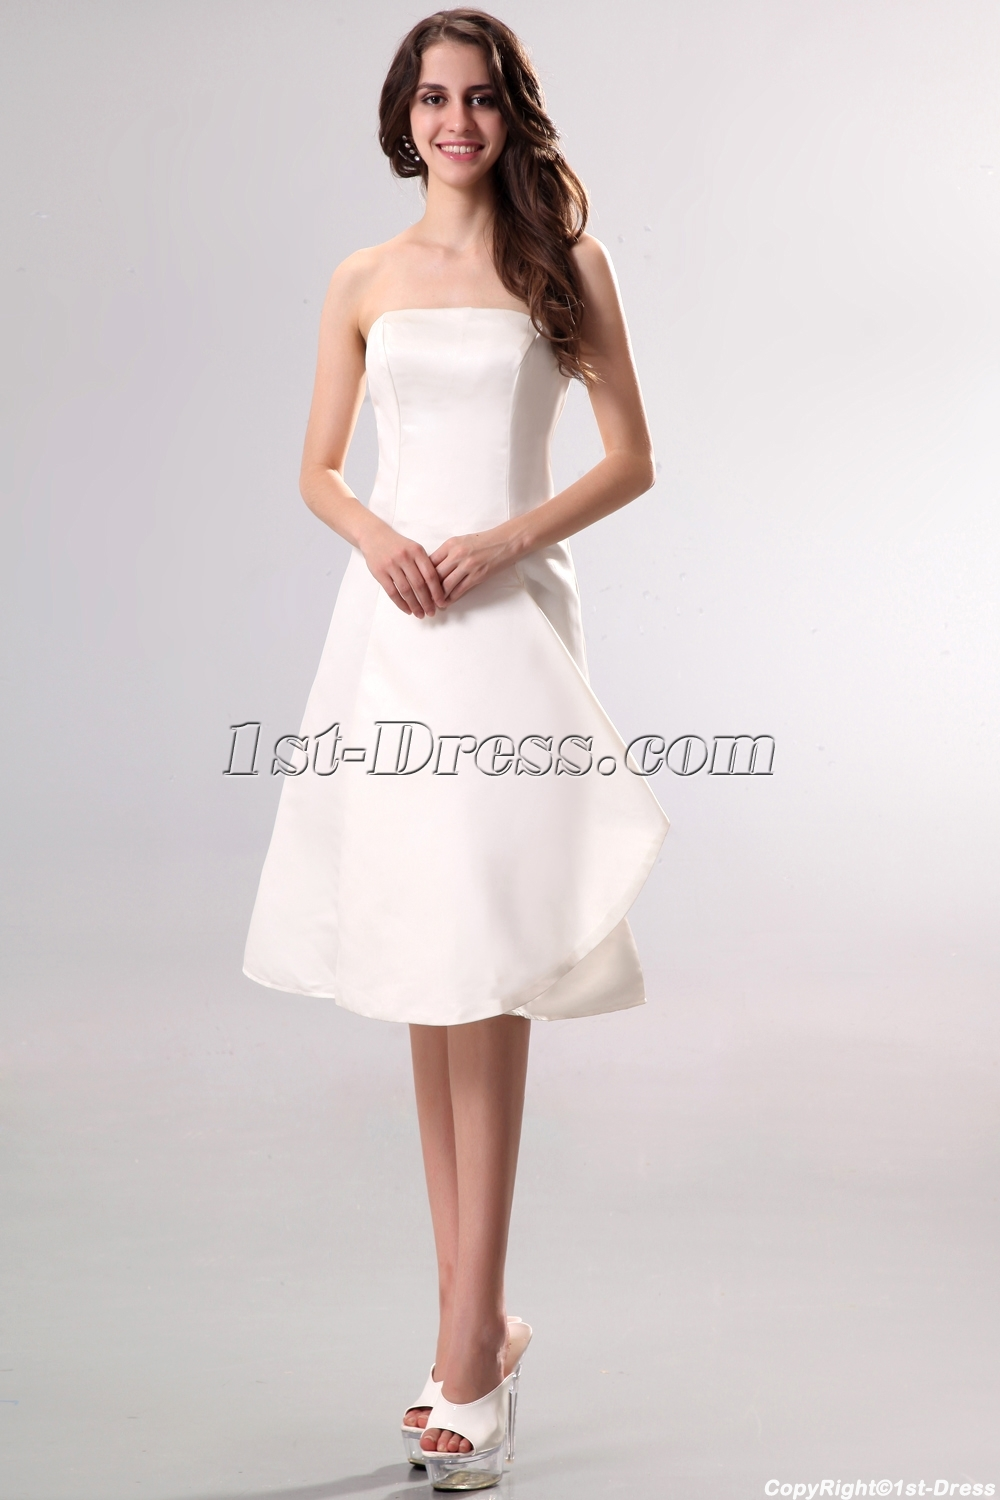 Wedding Strapless Dresses 104